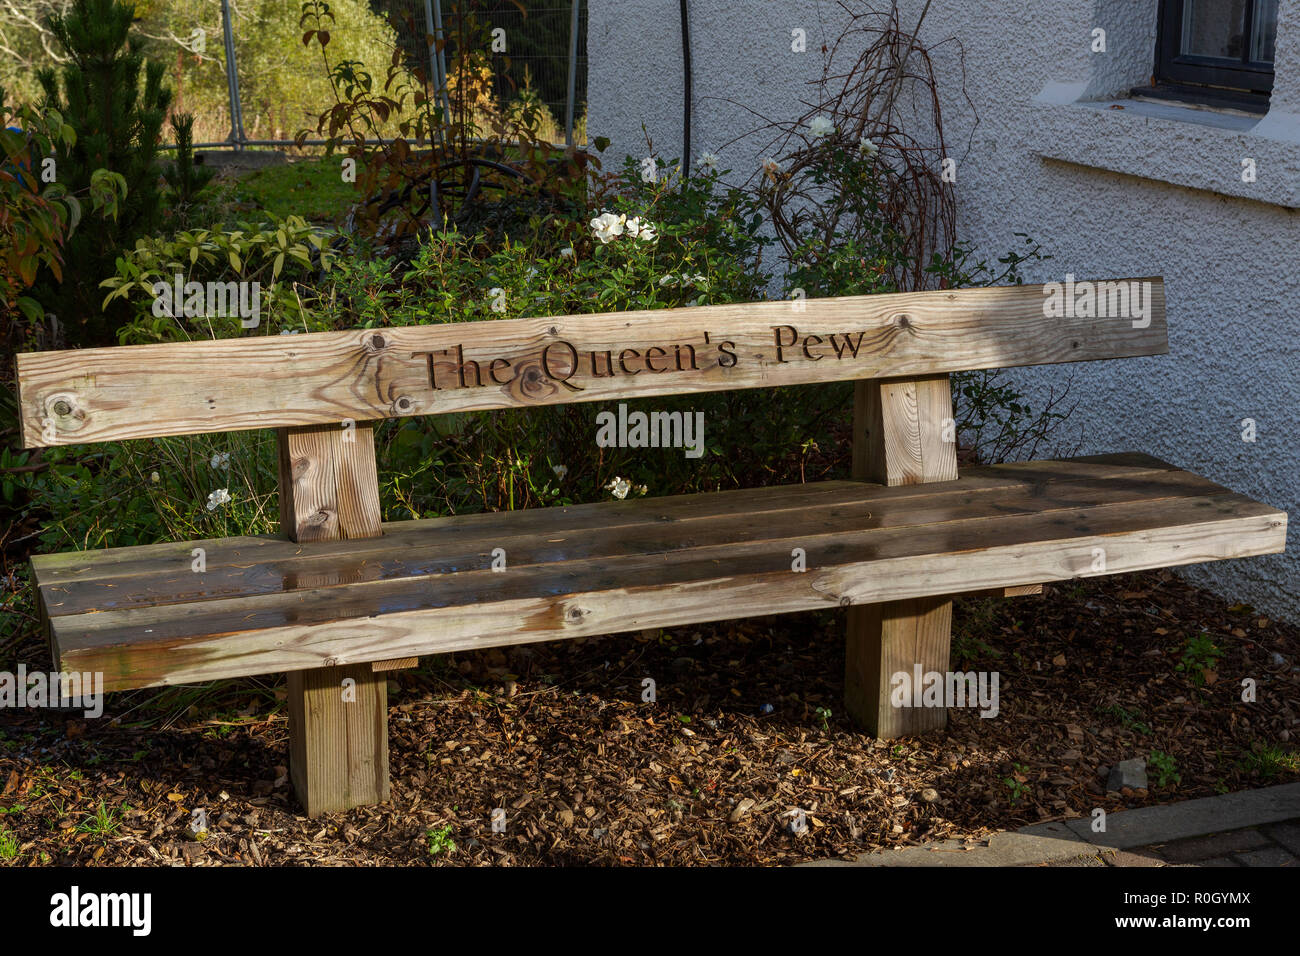 'The Queen's Pew'. Humorous inscription on a bench at the Queen's View visitor centre, near Pitlochry, Perth and Kinross, Scotland - Stock Image